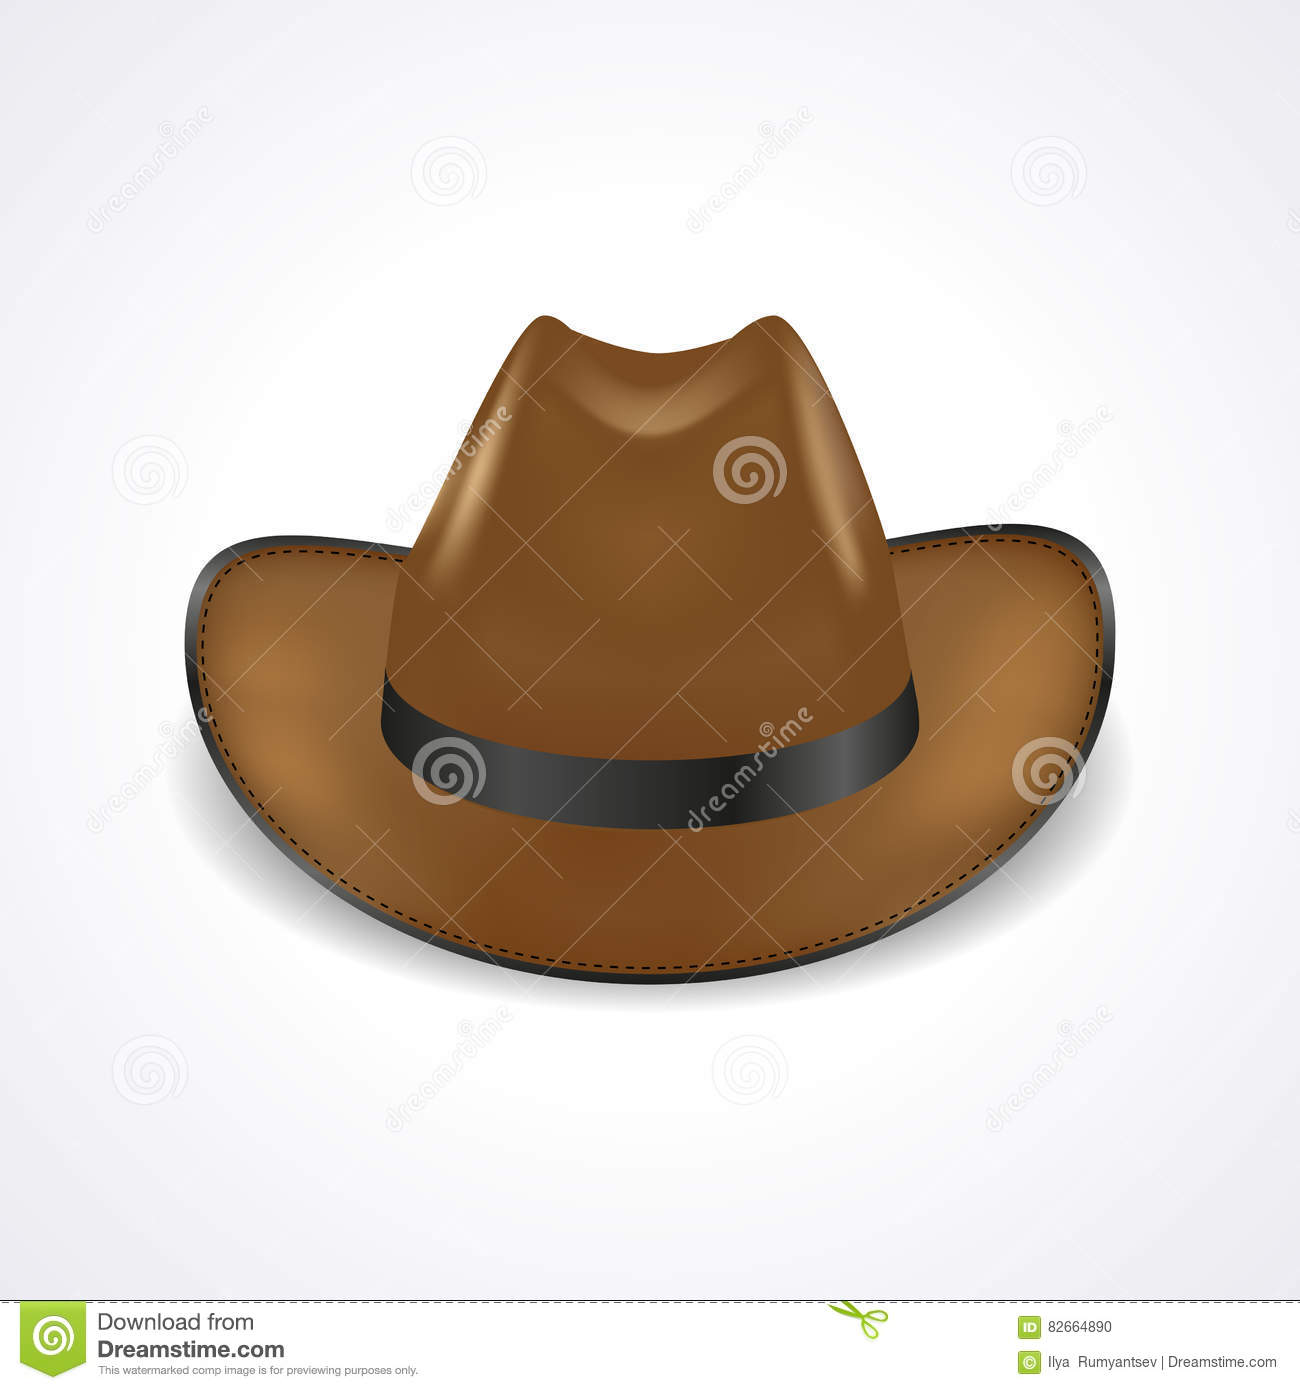 0a02f404 Cowboy hat on white background, front view, sheriff hat, realistic vector.  More similar stock illustrations